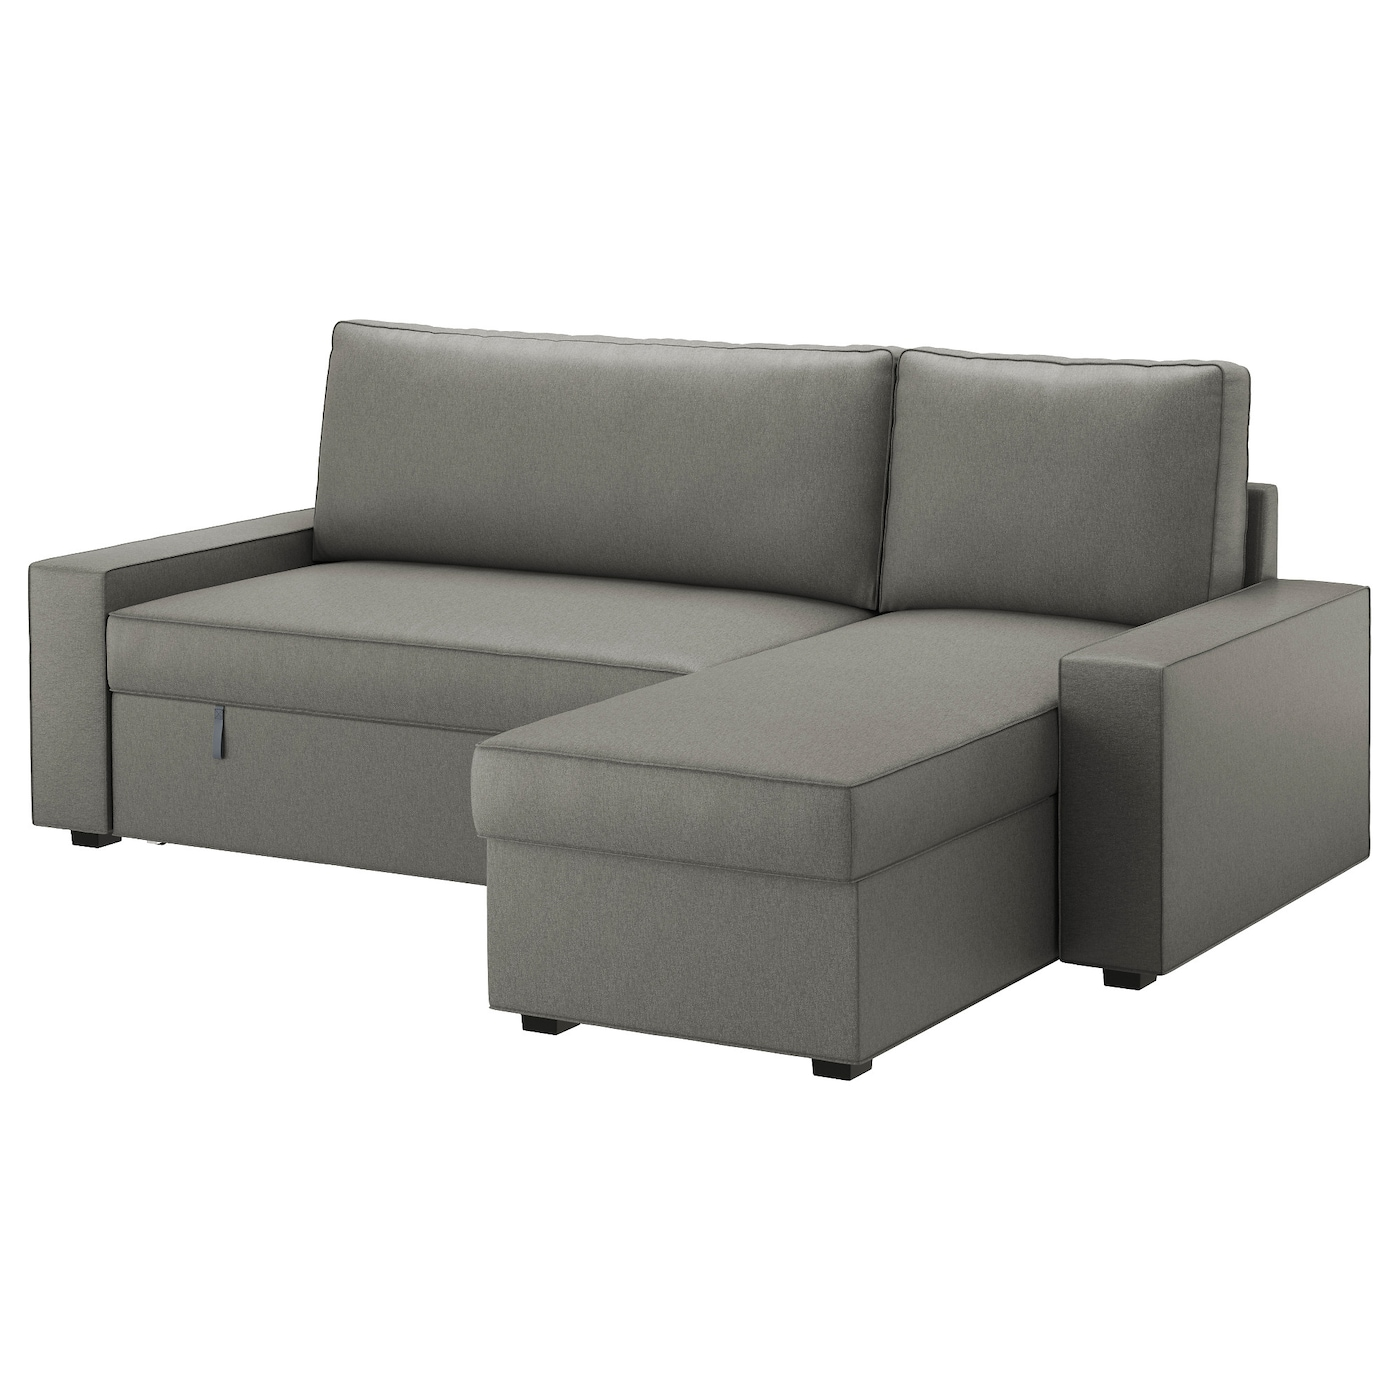 IKEA VILASUND sofa bed with chaise longue  sc 1 st  Ikea : chaise longue sofa - Sectionals, Sofas & Couches